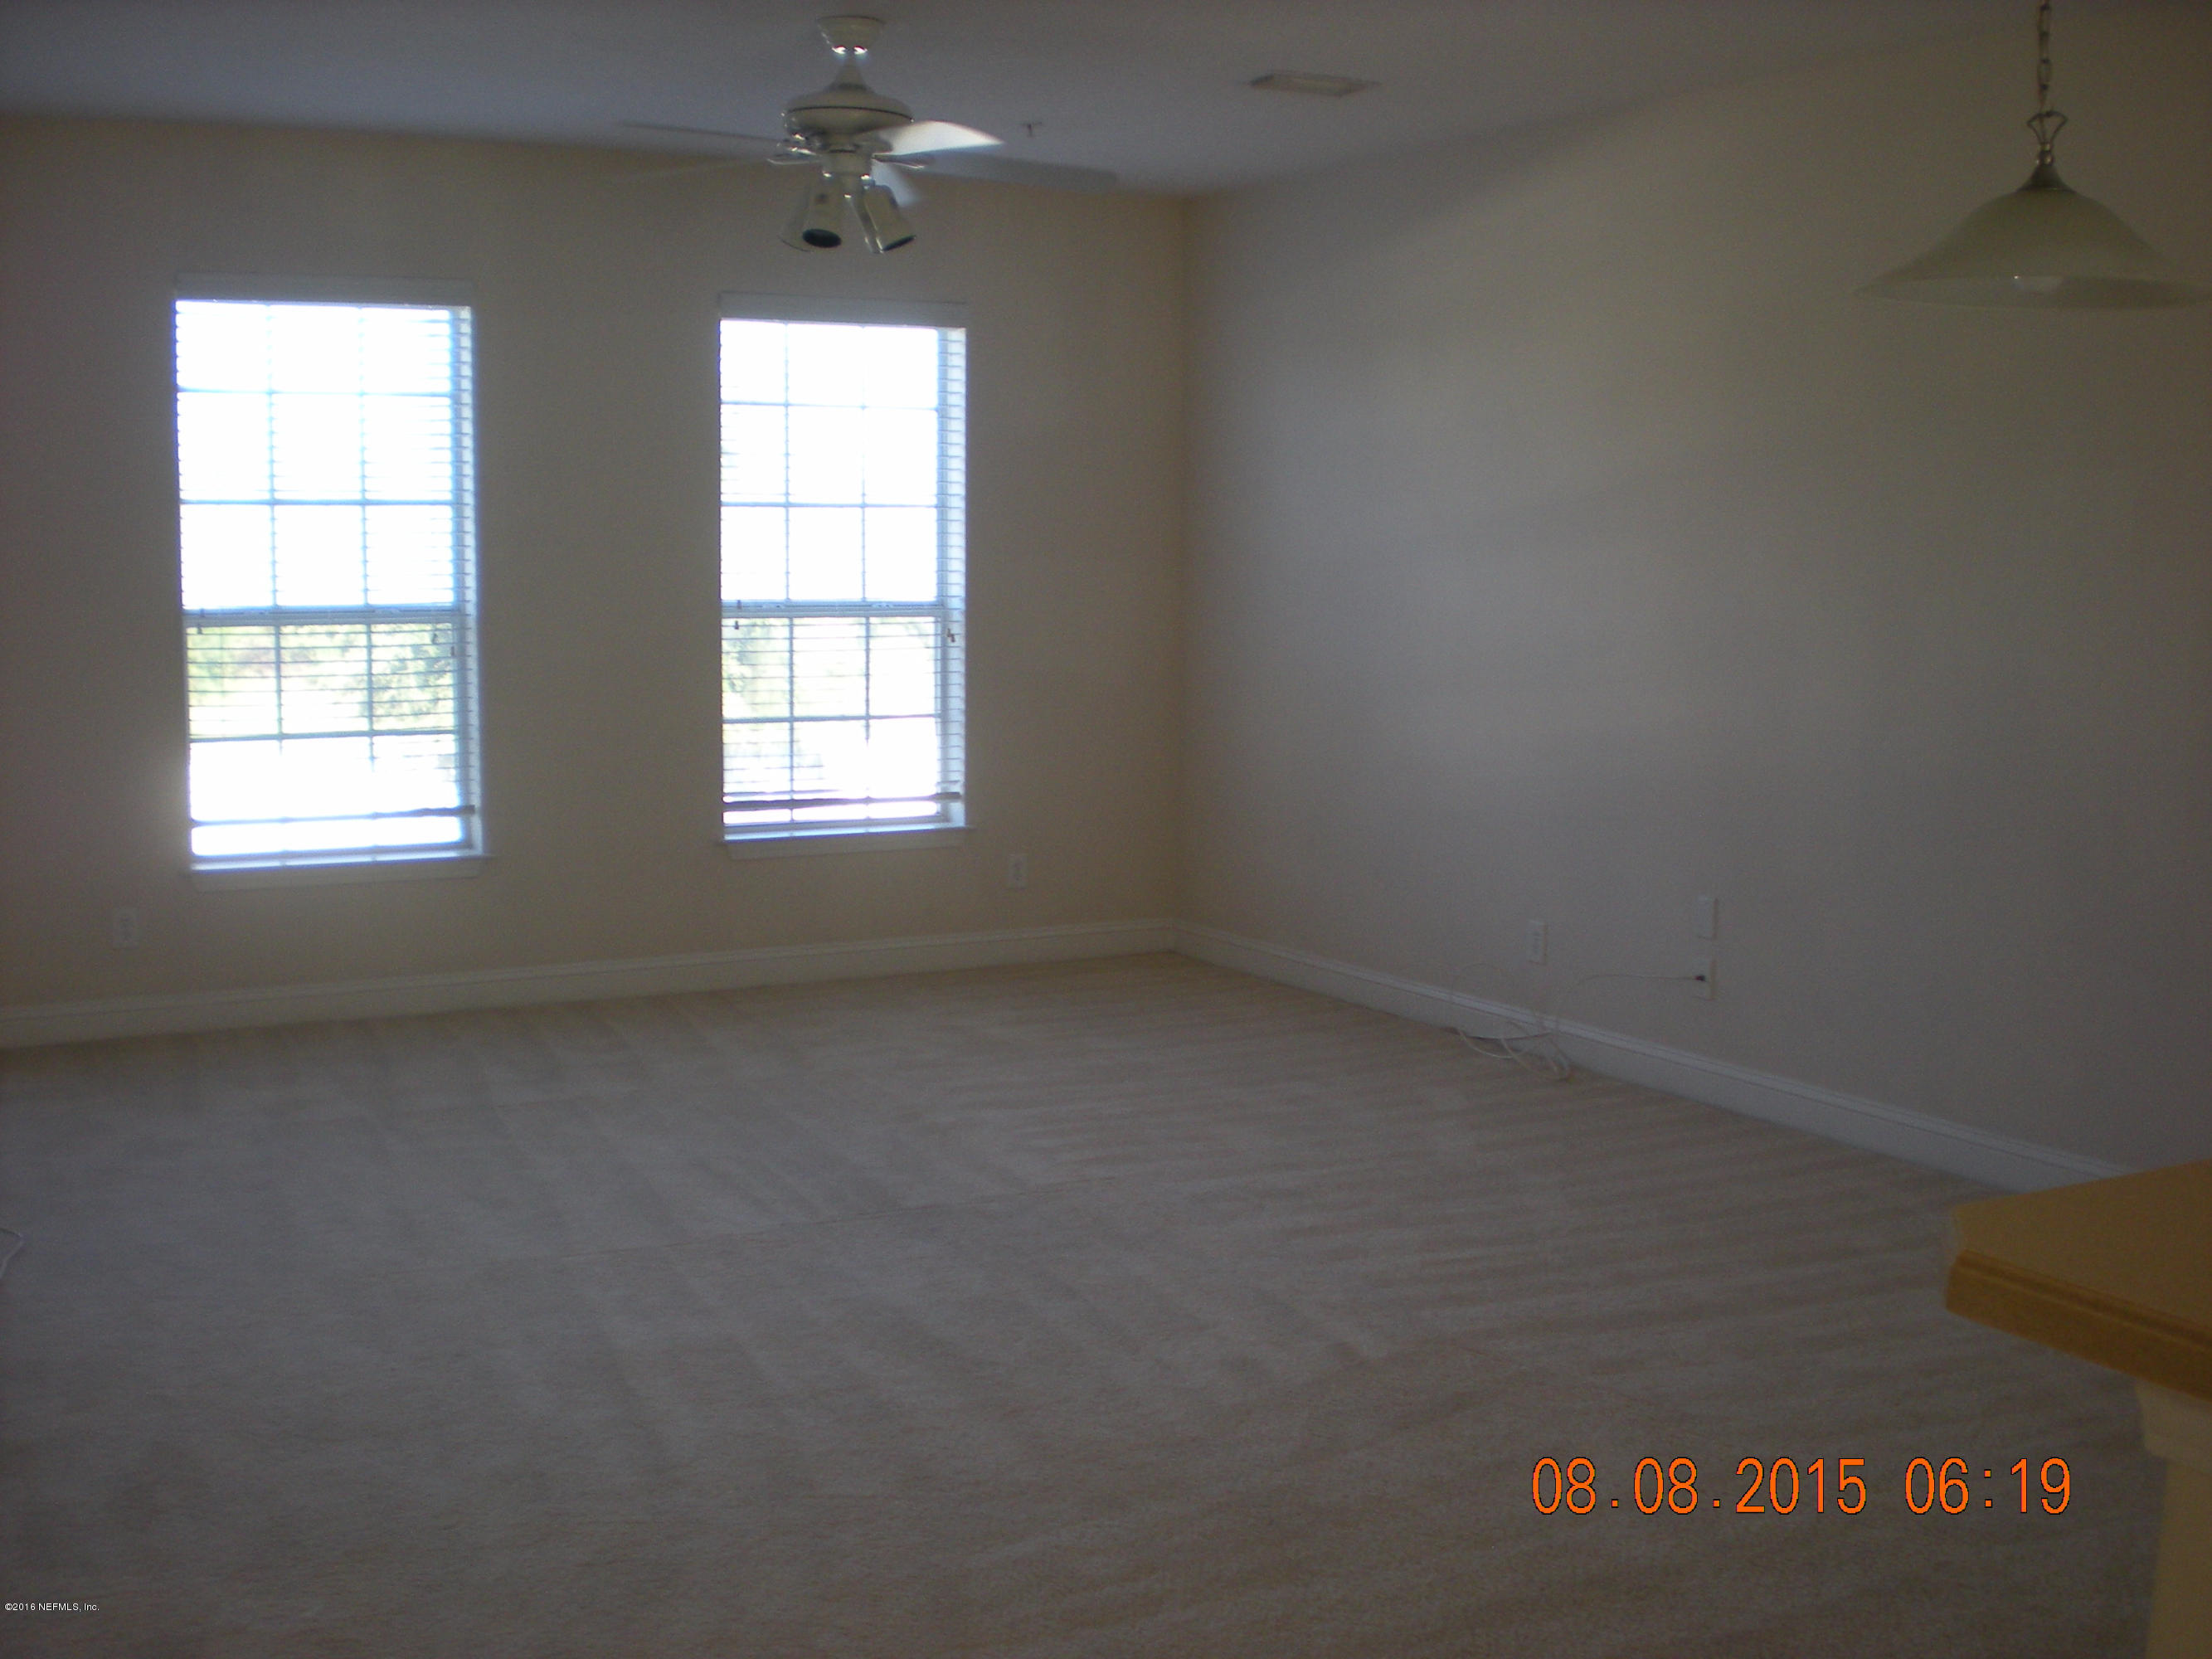 4472 CAPITAL DOME, JACKSONVILLE, FLORIDA 32246, 3 Bedrooms Bedrooms, ,2 BathroomsBathrooms,Residential,For sale,CAPITAL DOME,1075913